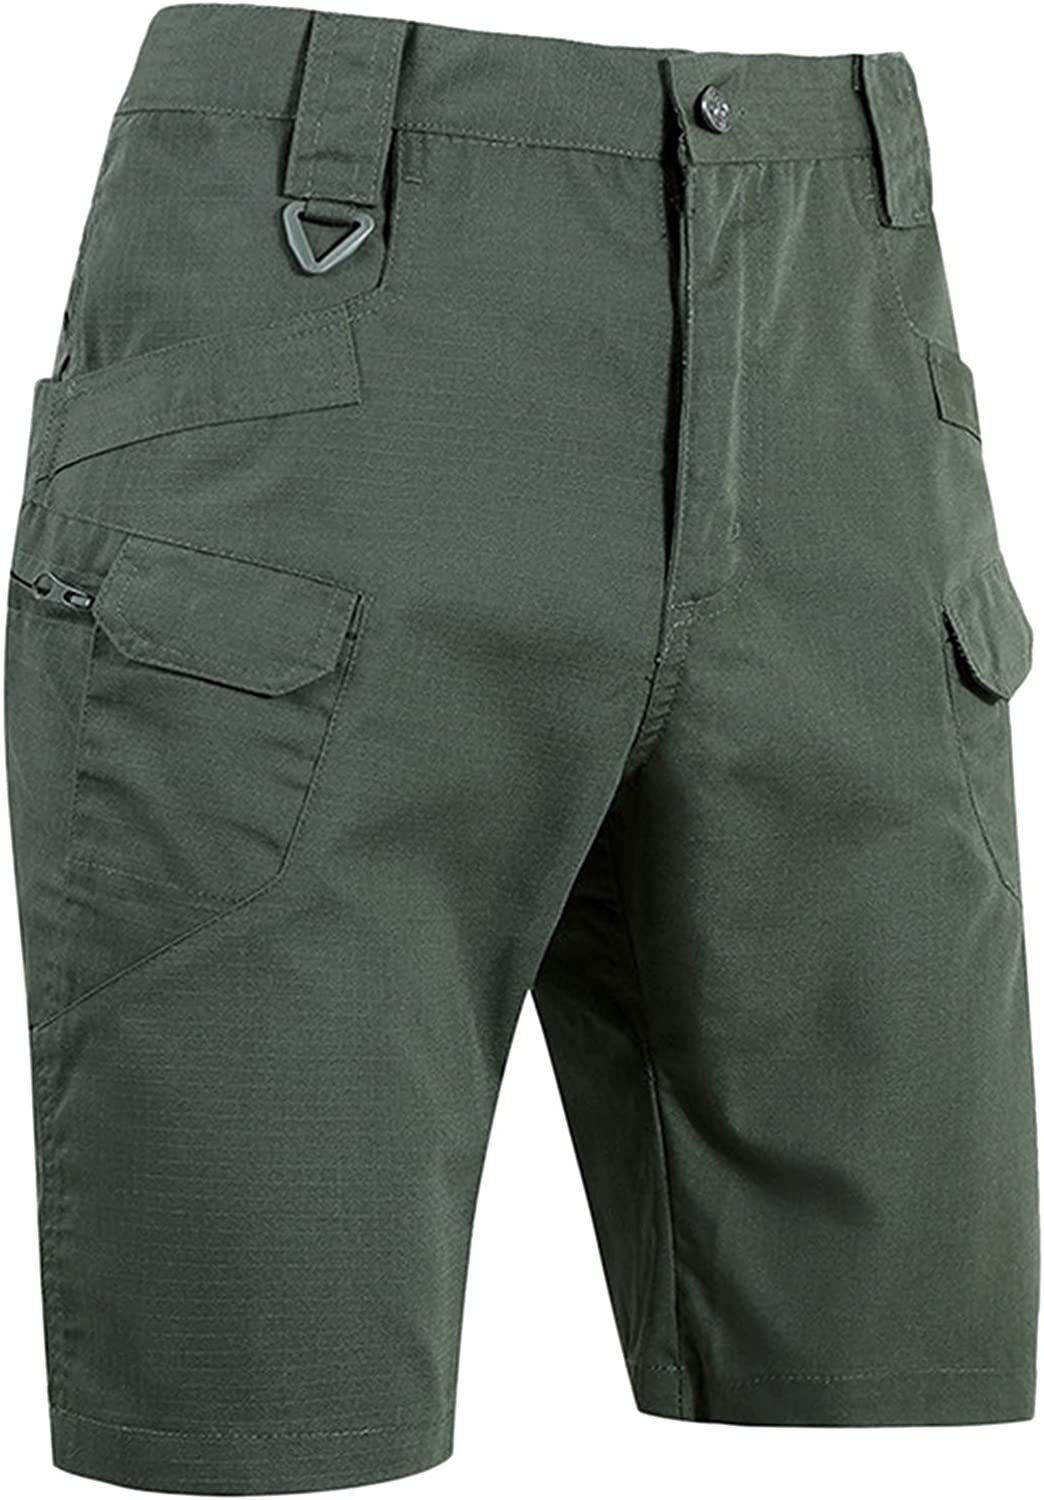 Men's Shorts Cargo Waterproof and Scratch-Resistant Multi Pocket Pocket Tooling Assault Casual Style Street Fashion Pants